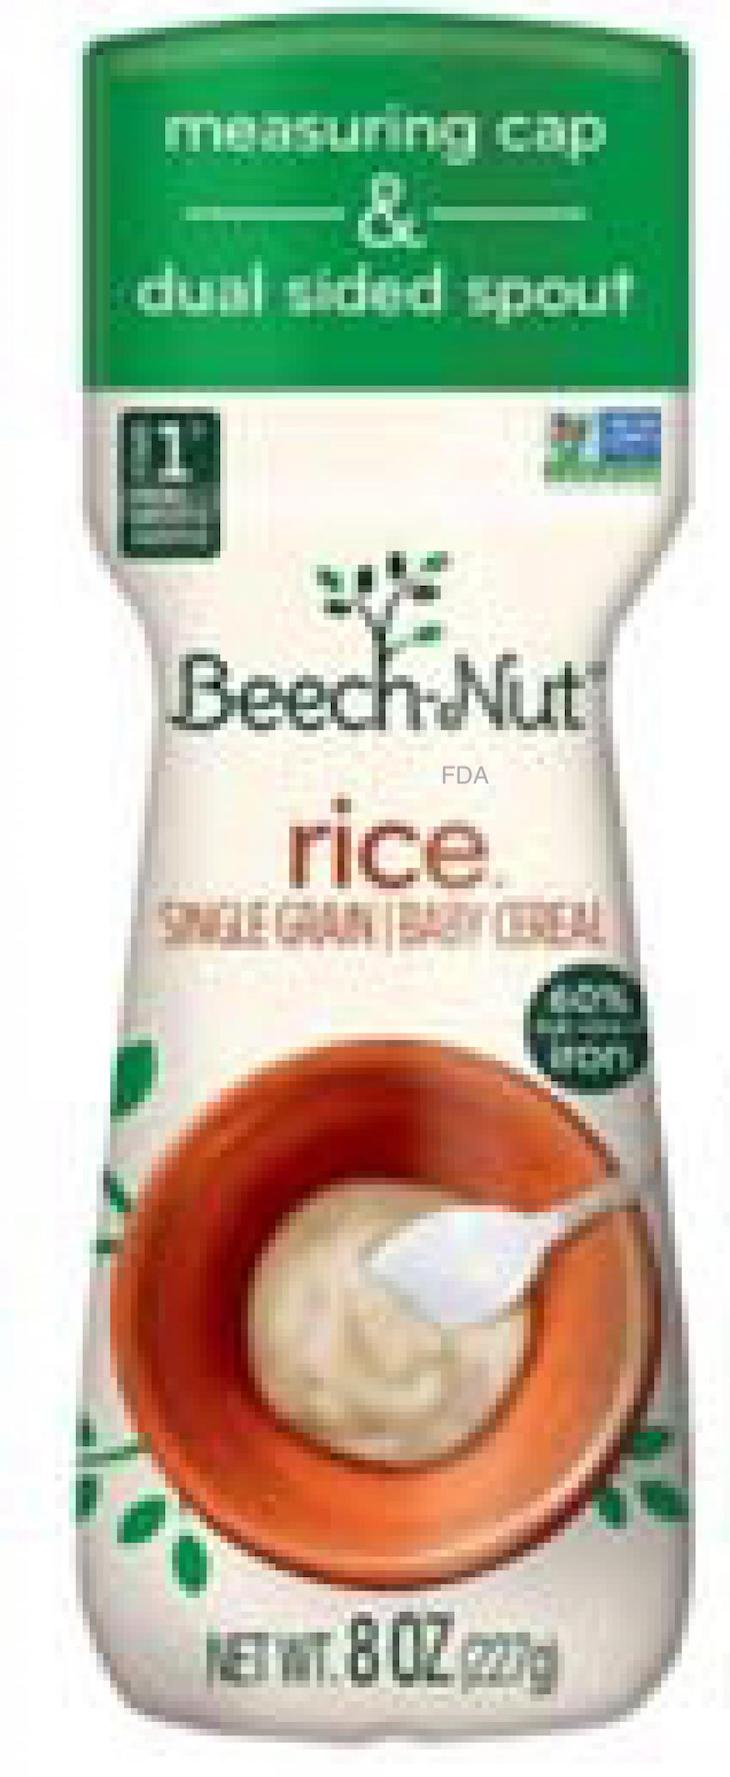 Beech-Nut Rice Baby Food is Recalled For High Inorganic Arsenic